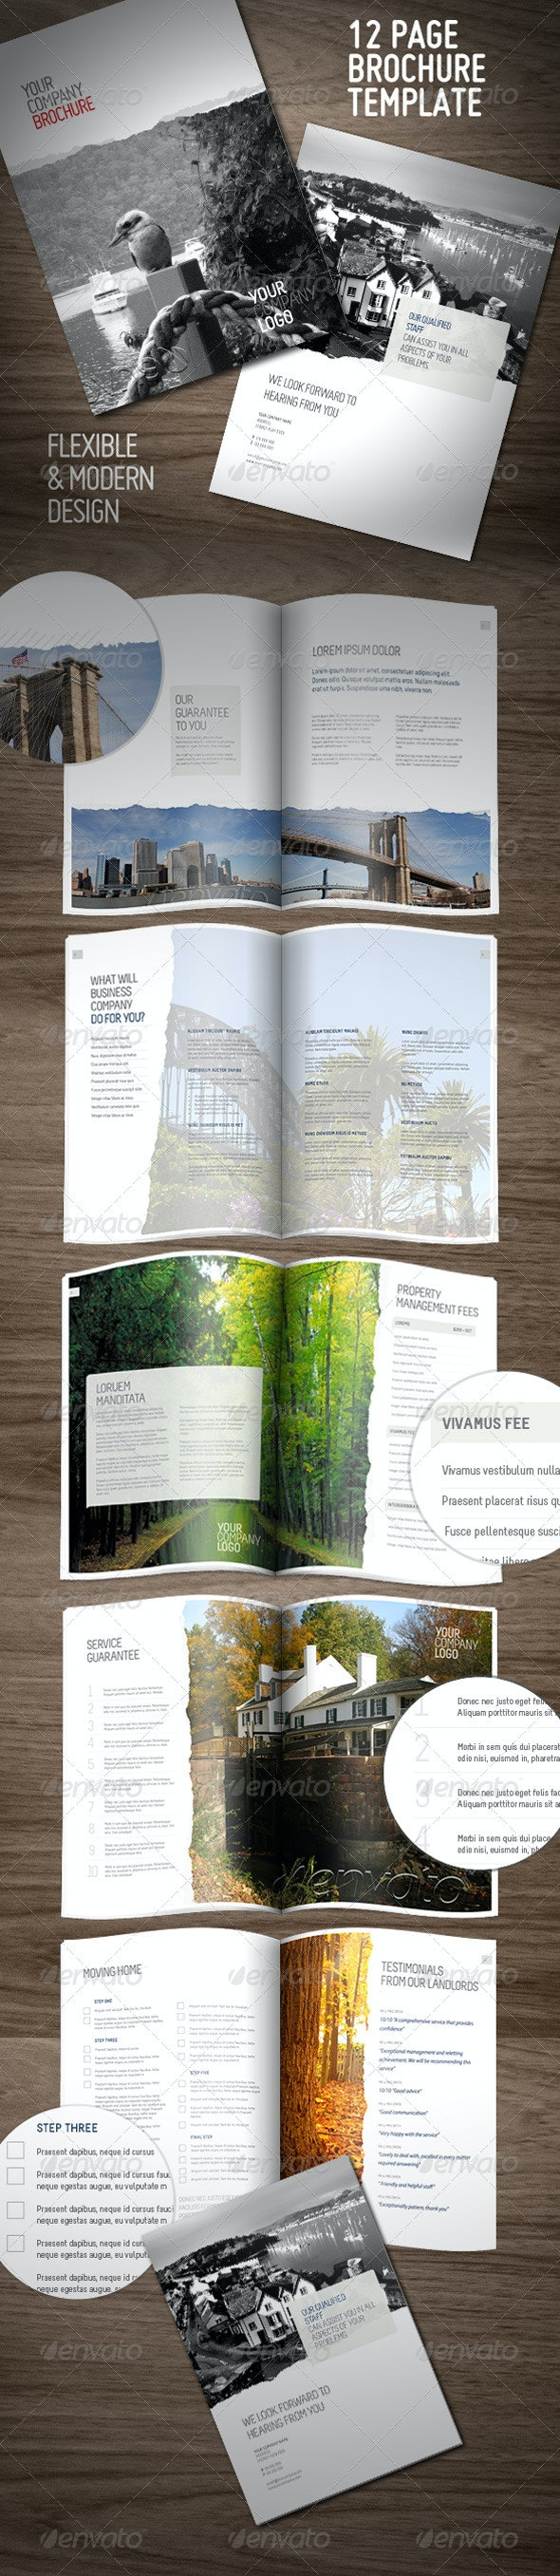 Clean Professional Brochure (12 pages) - Corporate Brochures